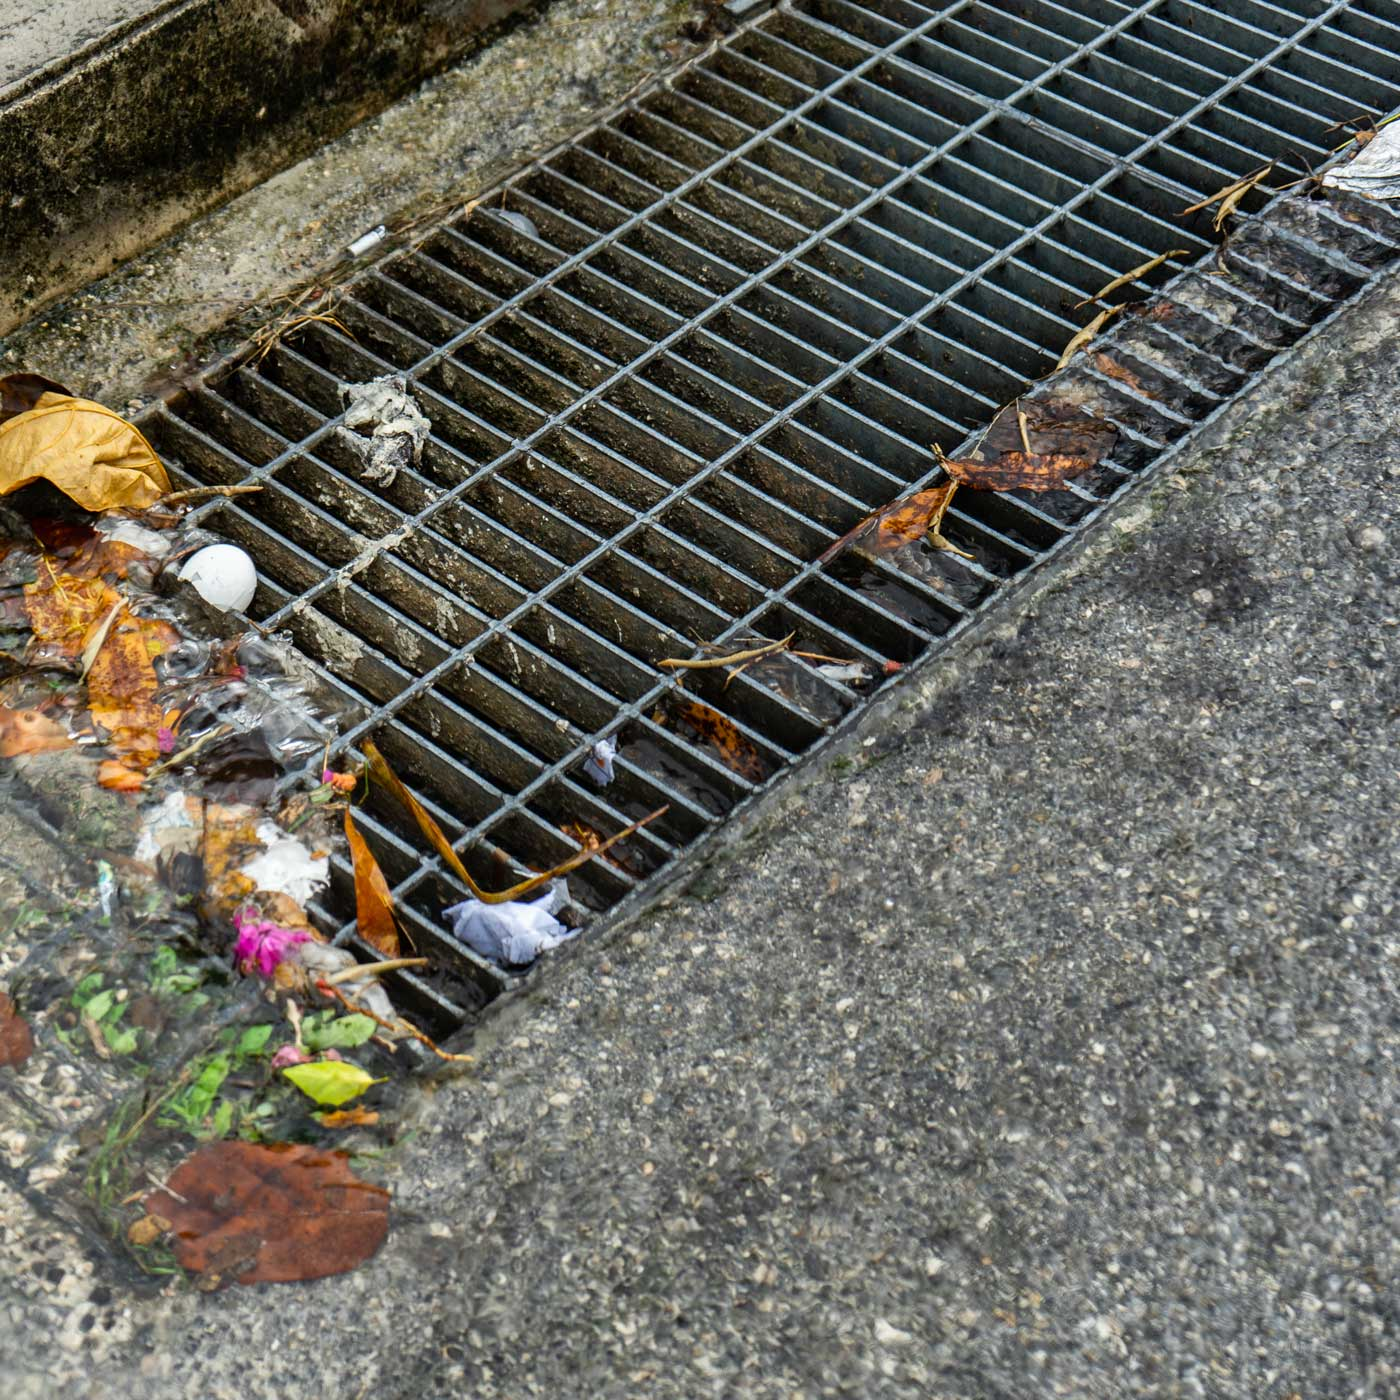 storm drain grate with rubbish